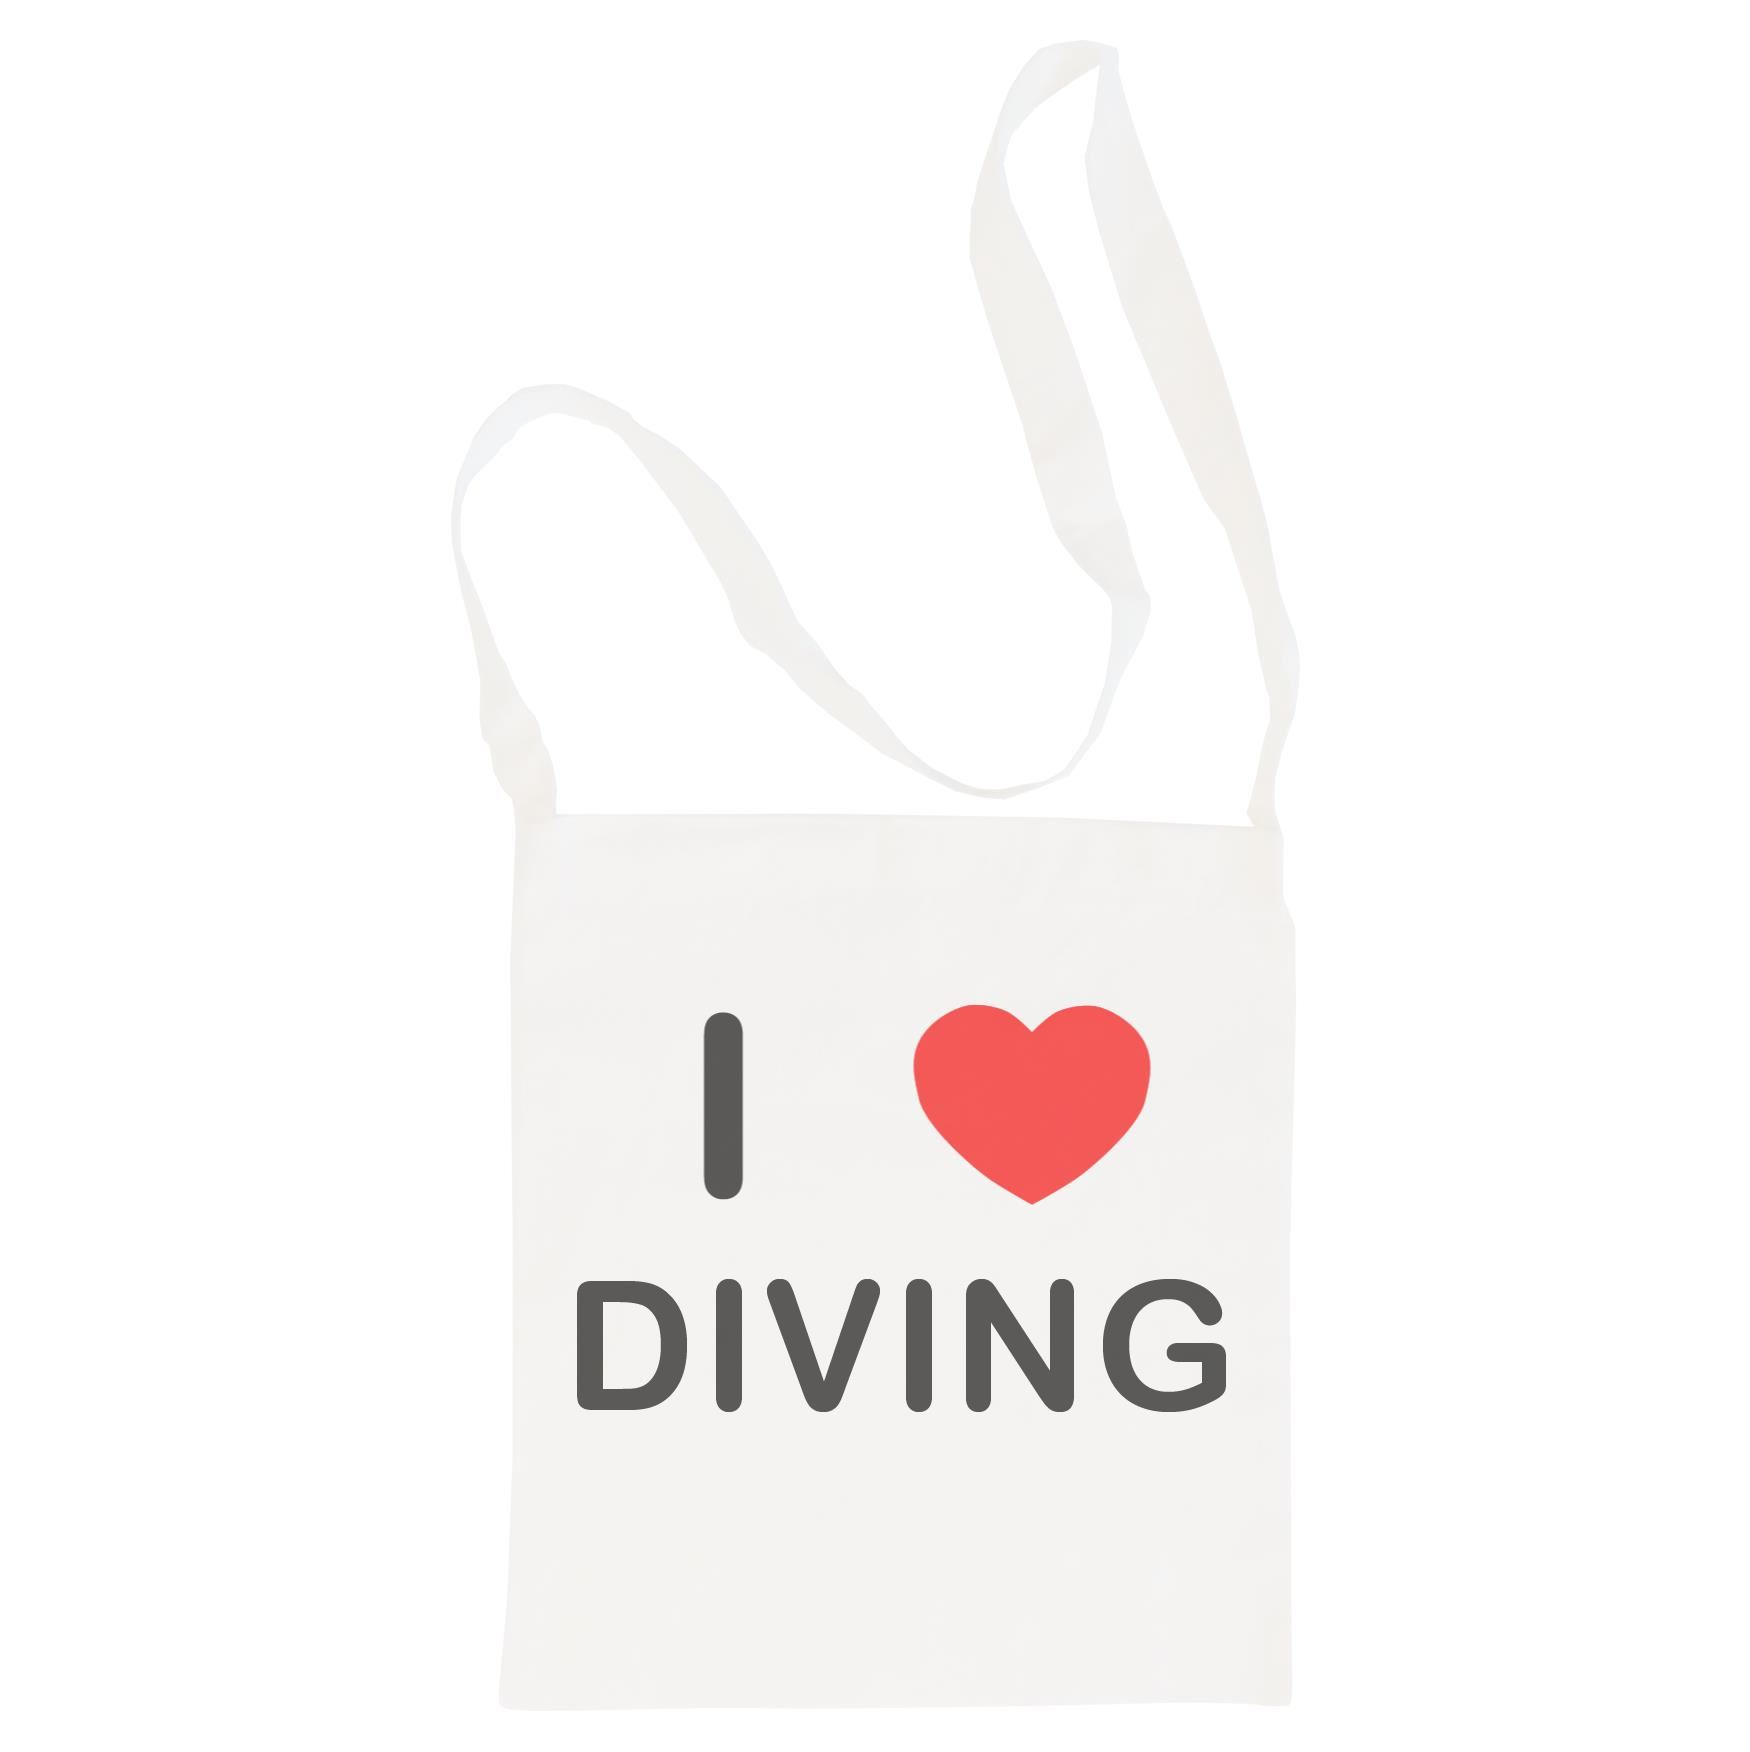 I Love Diving - Cotton Bag | Size choice Tote, Shopper or Sling